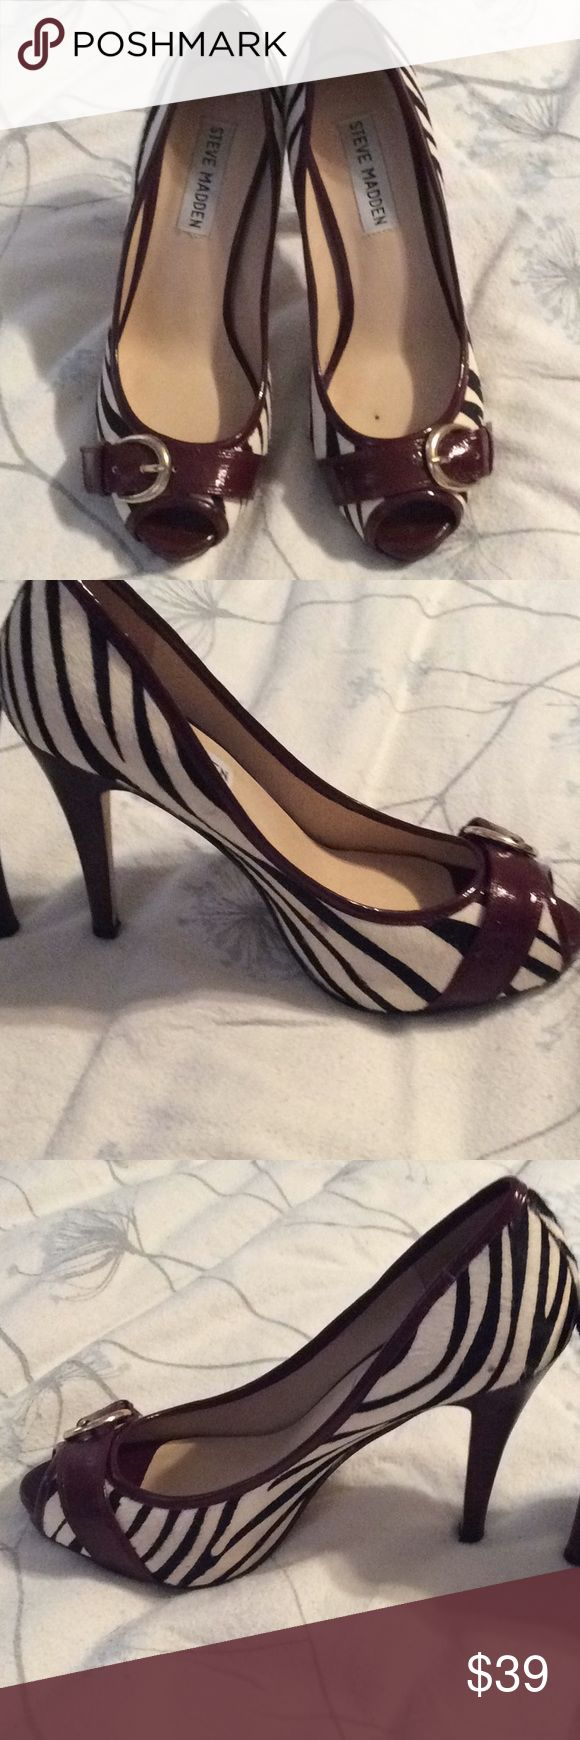 Zebra heels Preloved zebra fur fabric with maroon Patton leather buckles. These are adorable great condition Steve Madden Shoes Heels